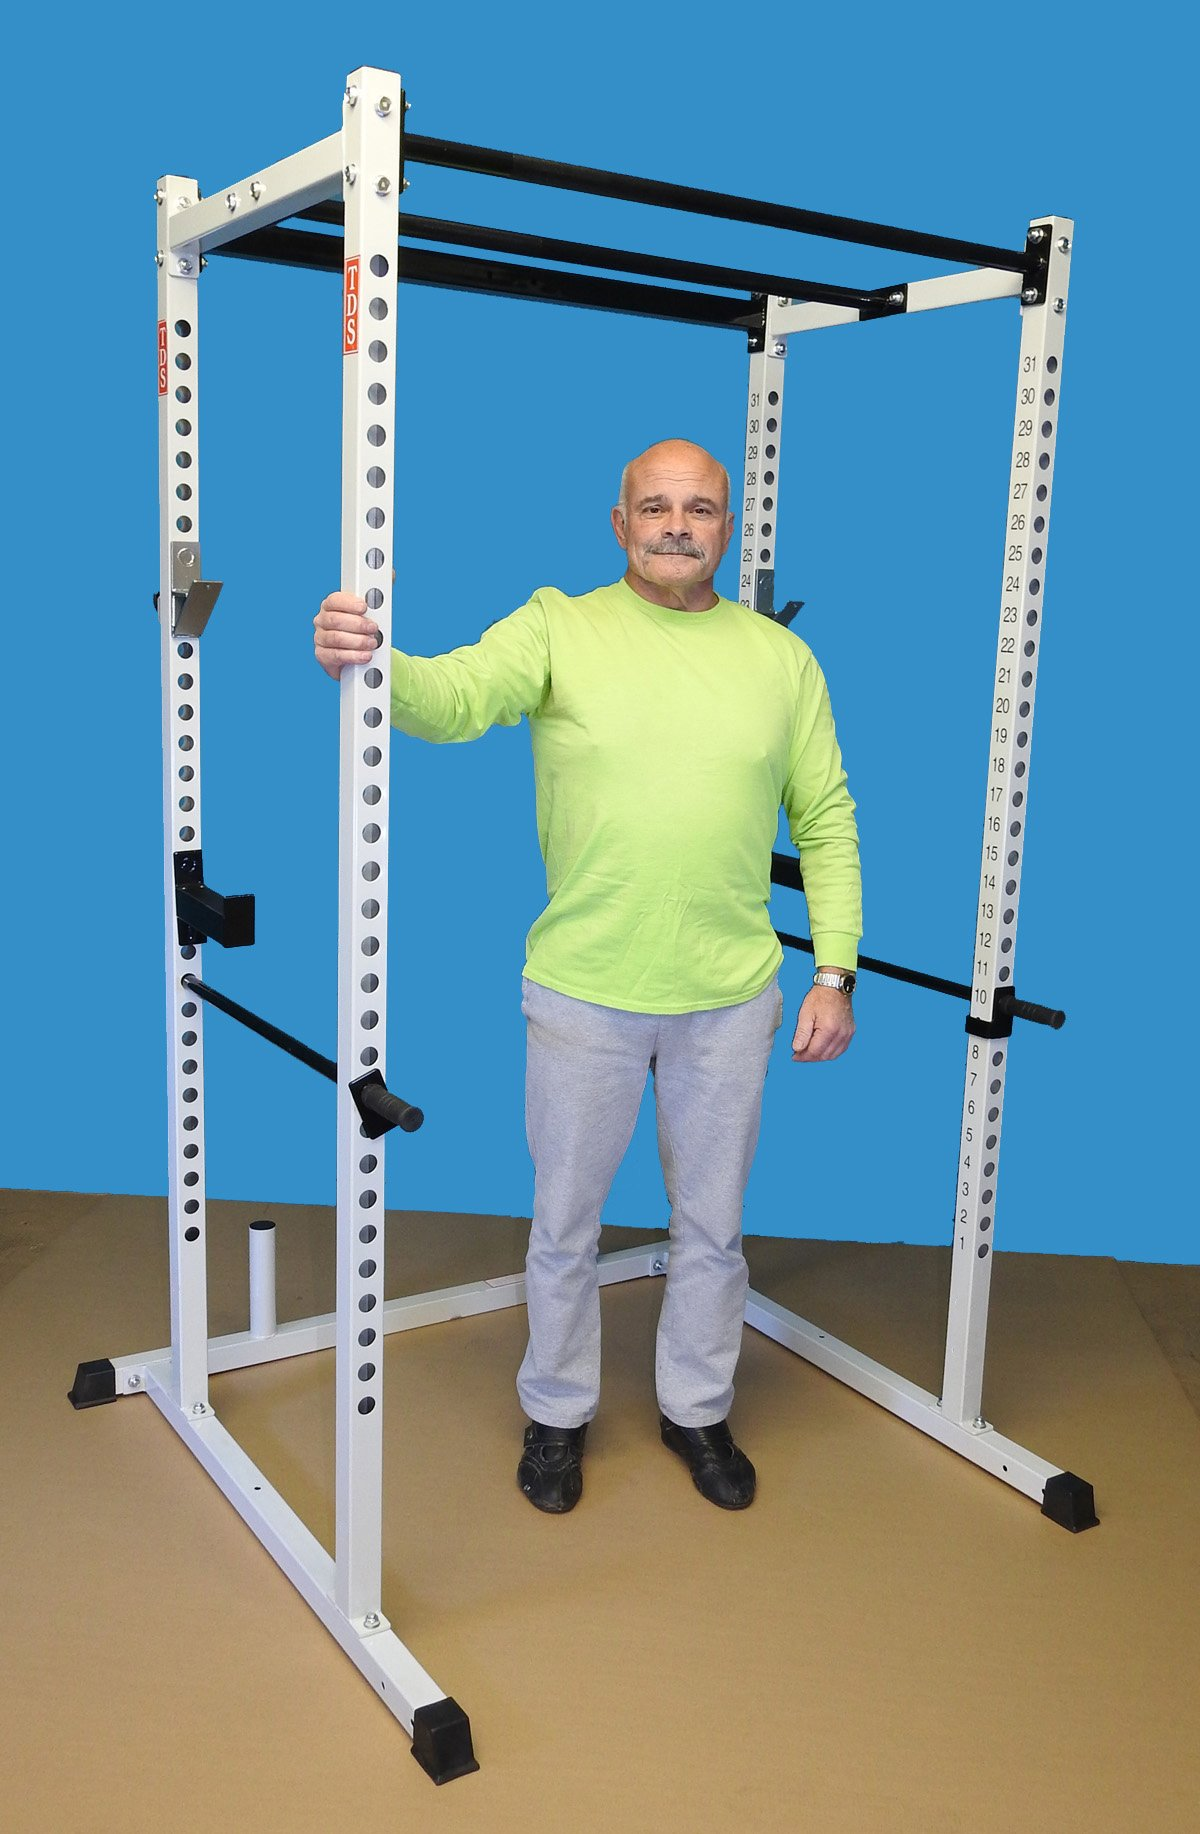 """TDS Special HD Power Squat Rack with Dual 1.25"""" Dia Knurled Pull up Bars, Numbered Uprights, 1000 lb Rated, Heavy Duty J Hooks, Jumbo Hooks, Solid steel Safety Bars and provision to add attachments. by TDS"""